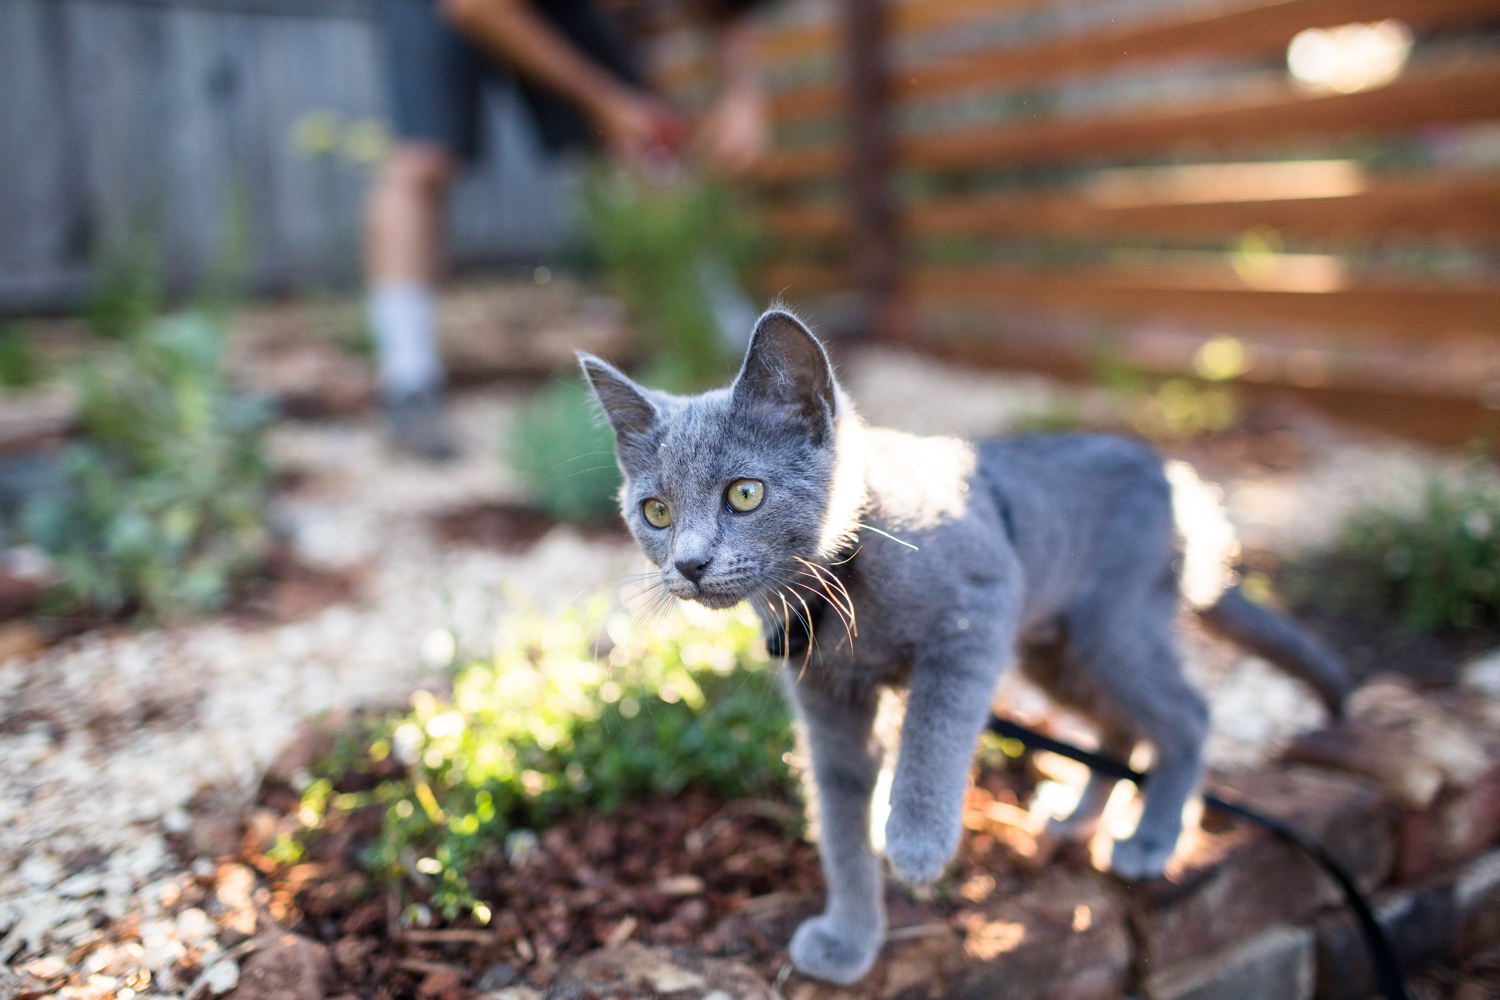 nevada city lifestyles photographer documentary natural light kitten in a garden